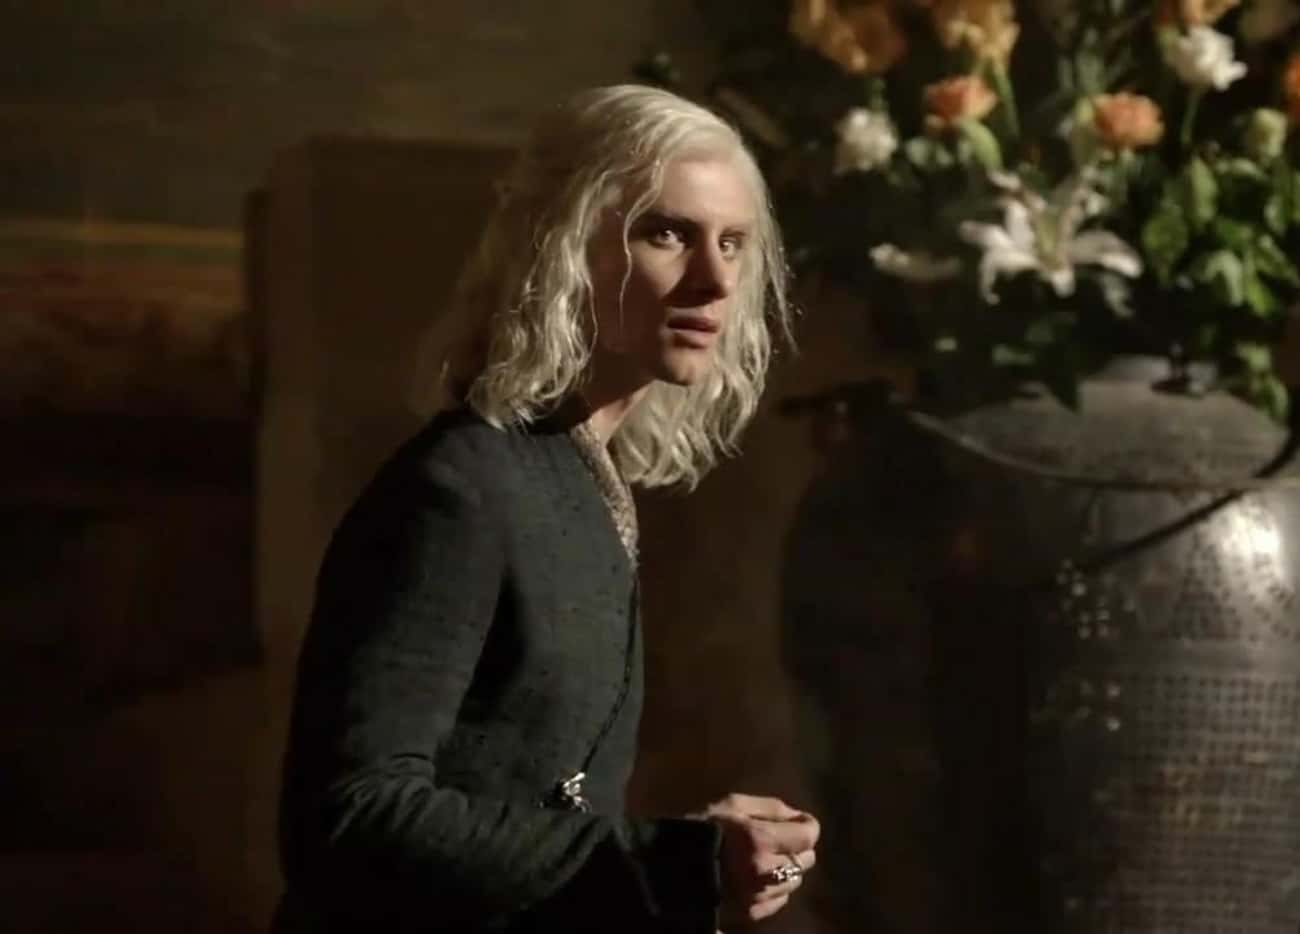 King Viserys III